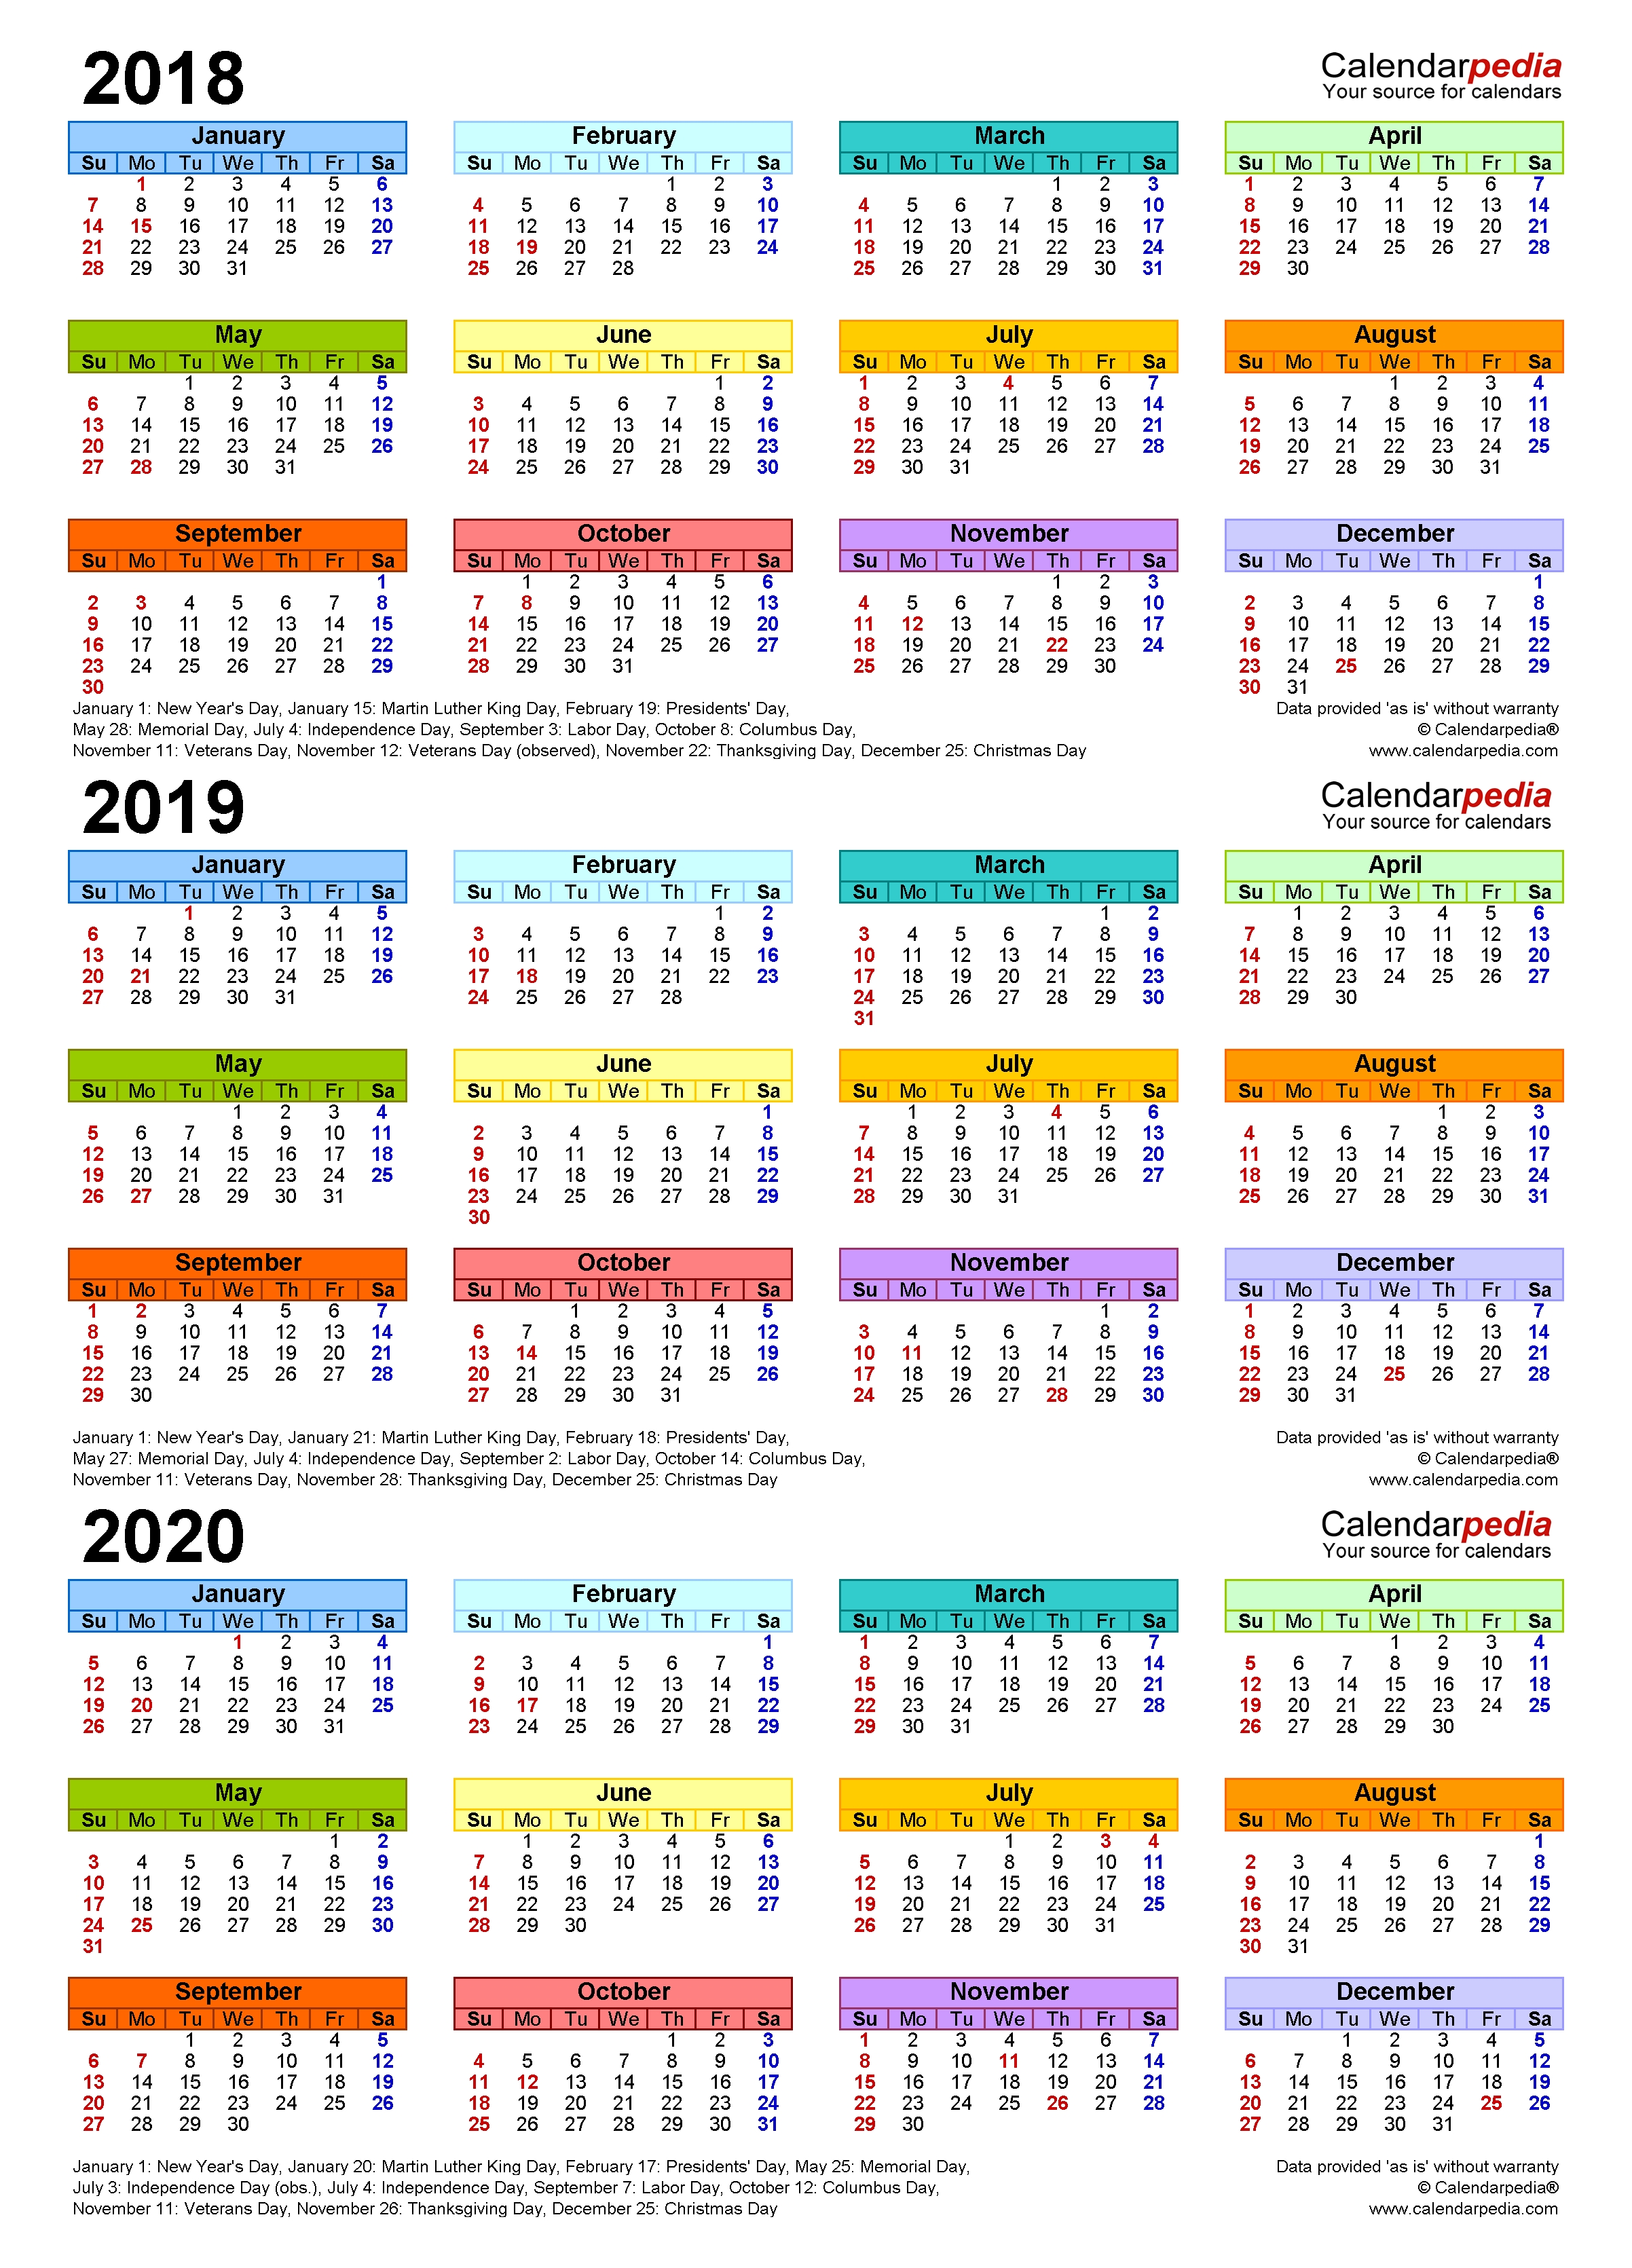 2018-2020 Three Year Calendar - Free Printable Pdf Templates intended for Calender For 2020 Week Wise In Hindi